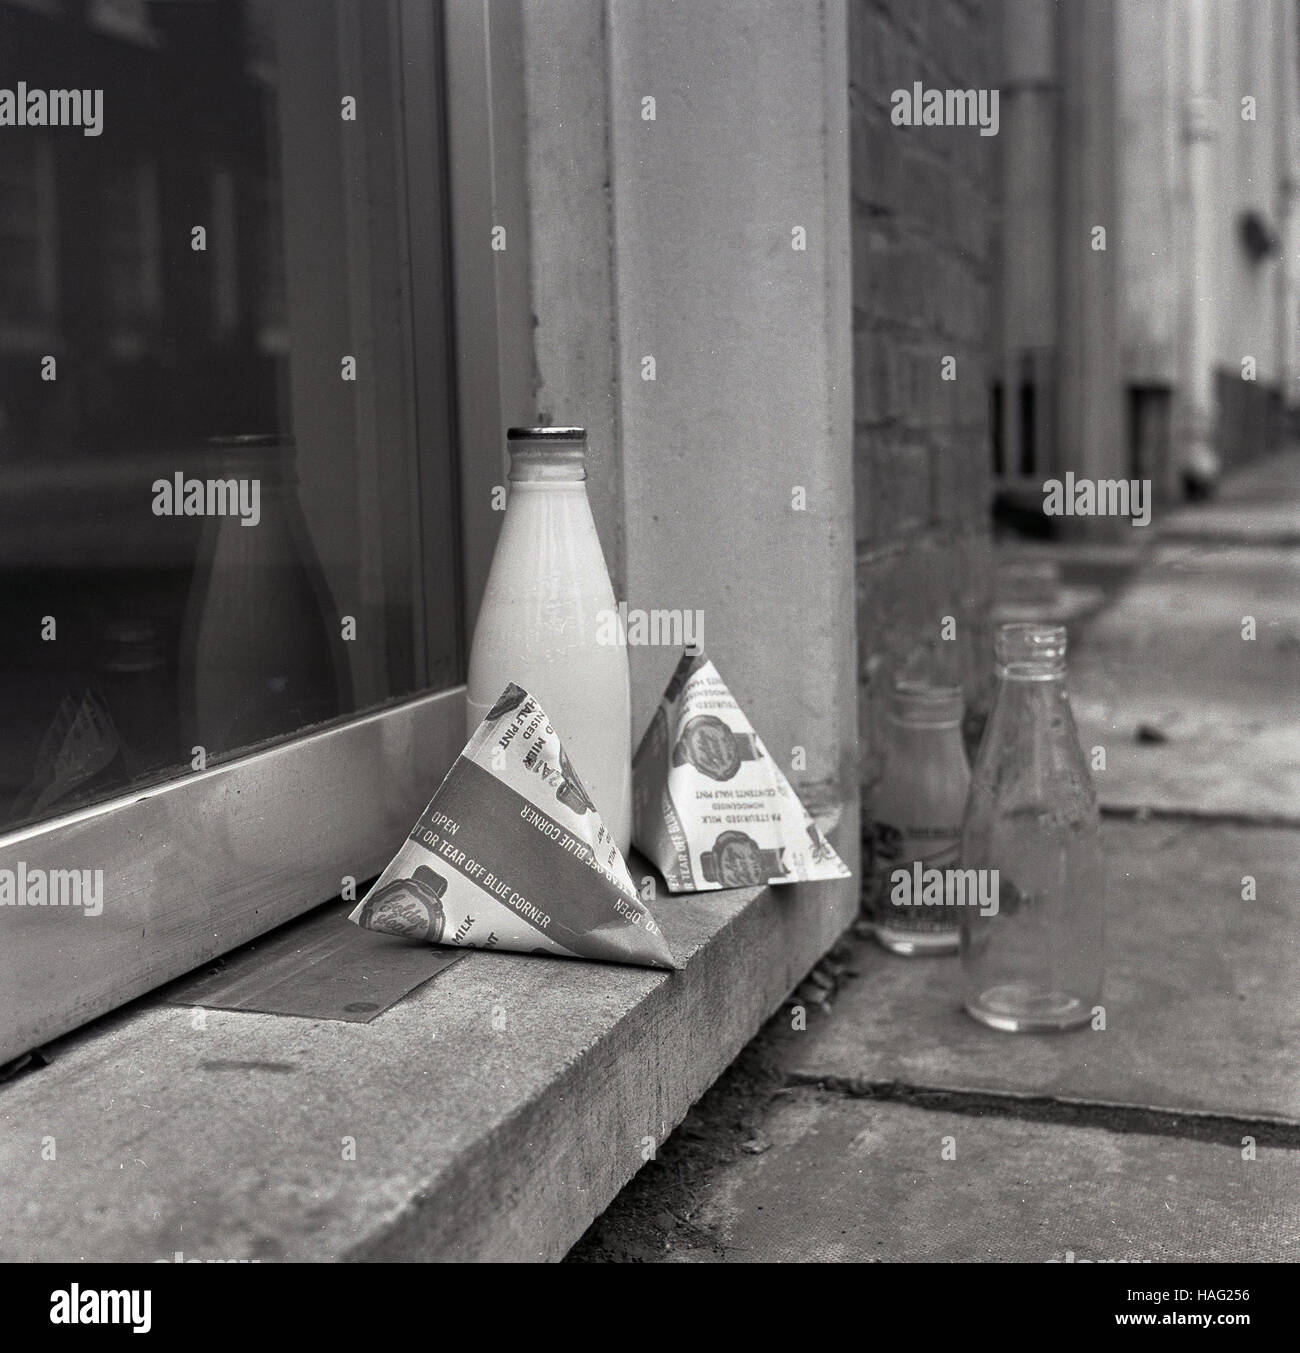 1965, historical, a pint size glass milk bottle and  two milk cartons sit on a house doorstep, with one empty glass - Stock Image